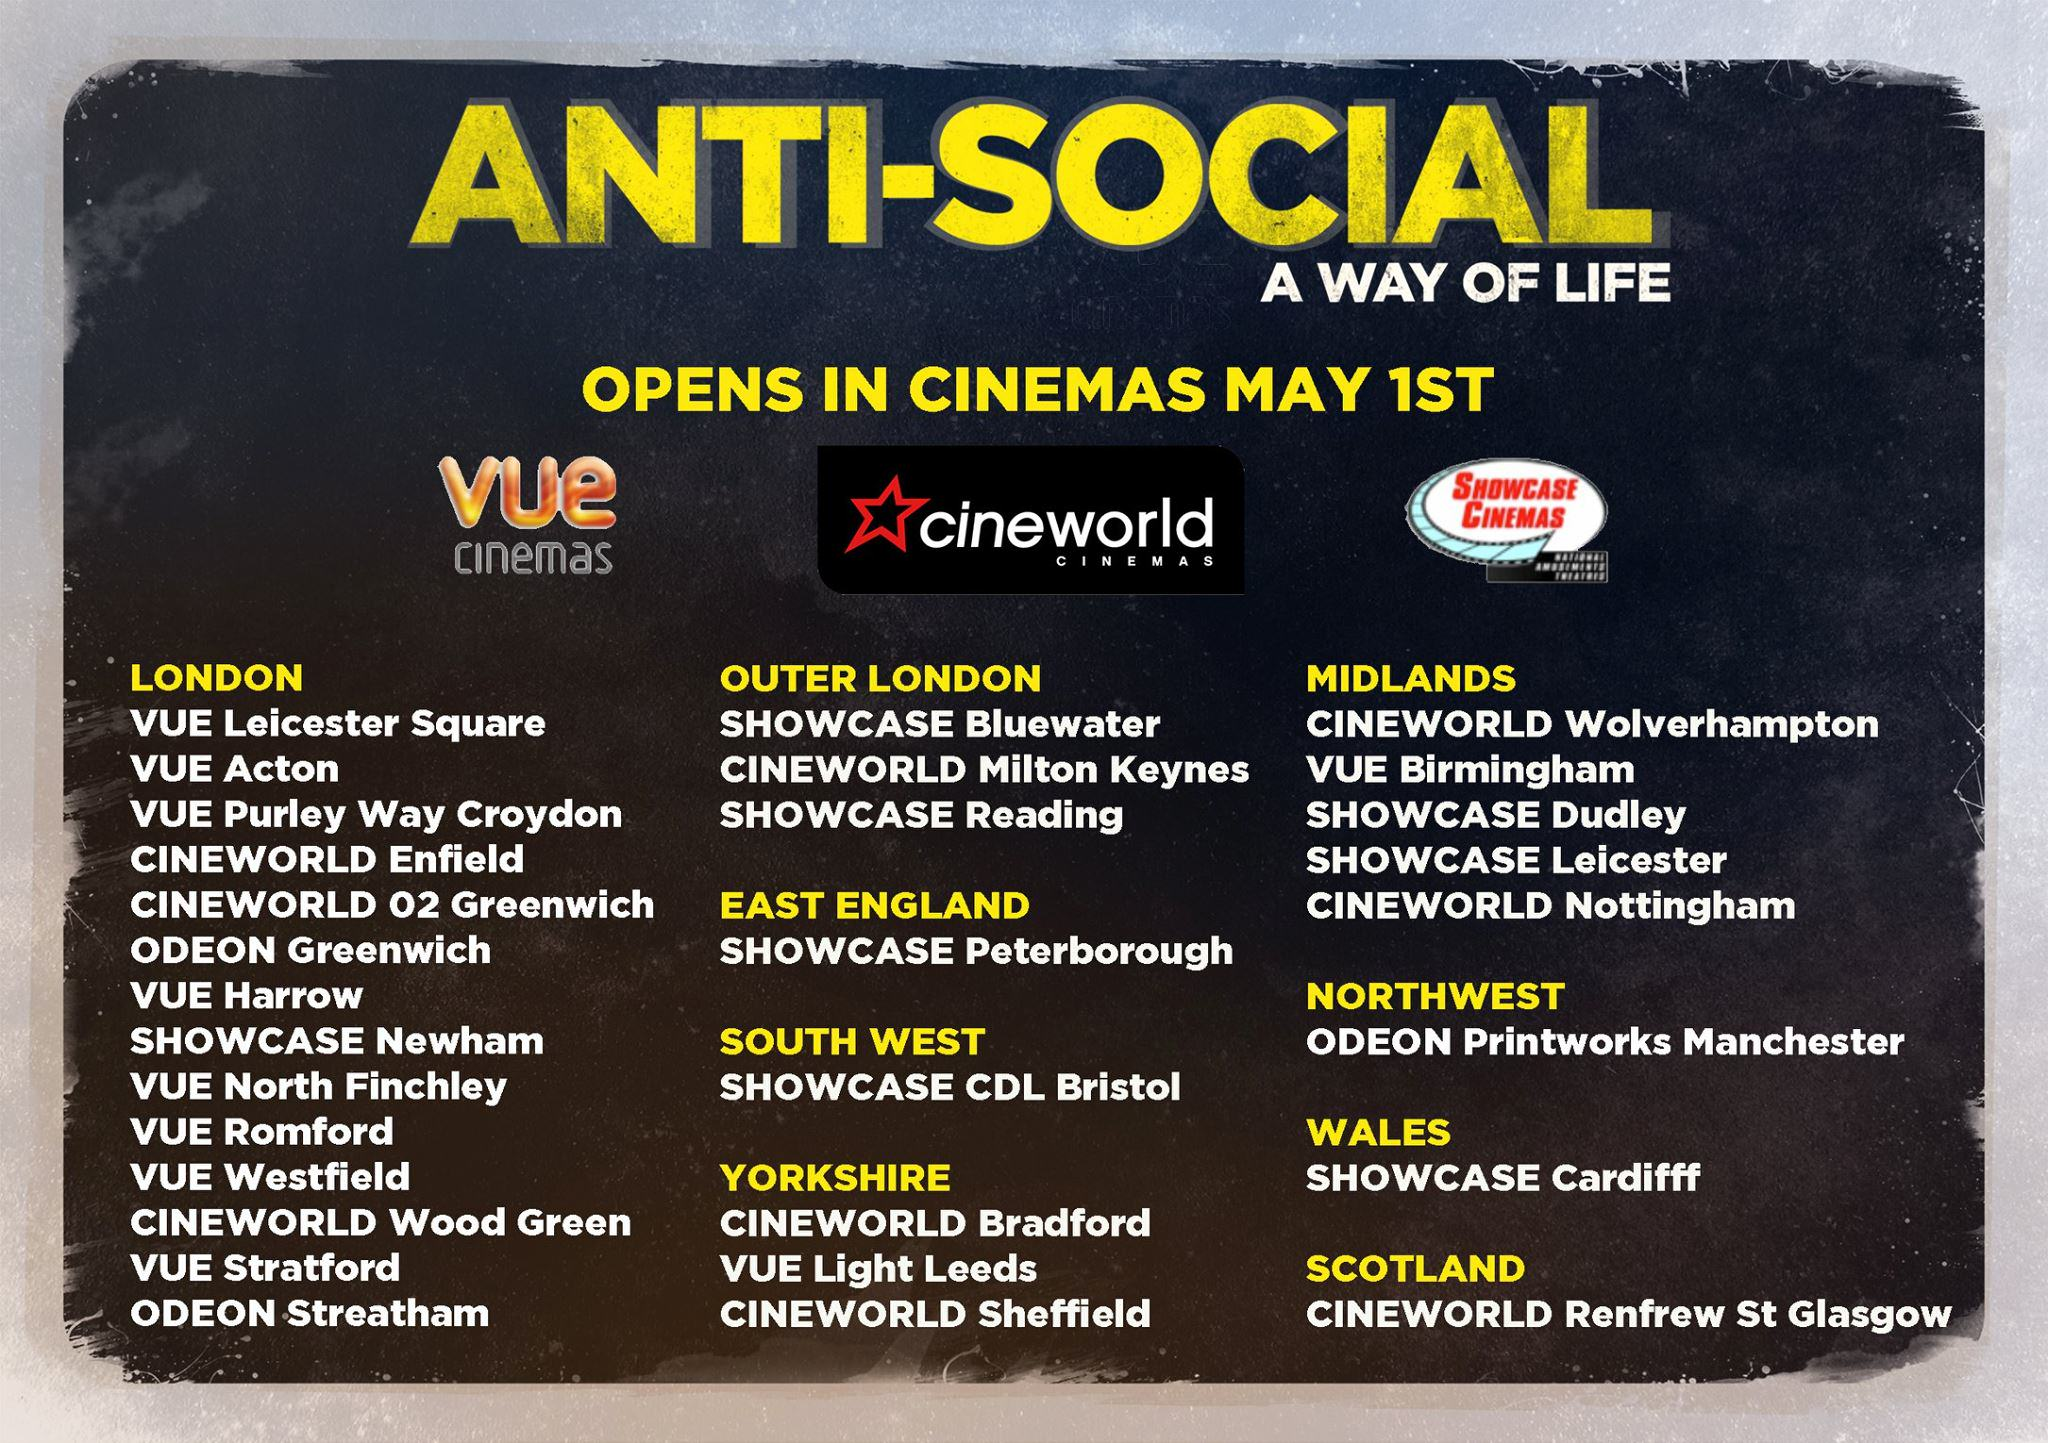 11200934 1633248966911458 3358046140751028952 o British Film Anti Social Couldnt Have Been Released At A Better Time